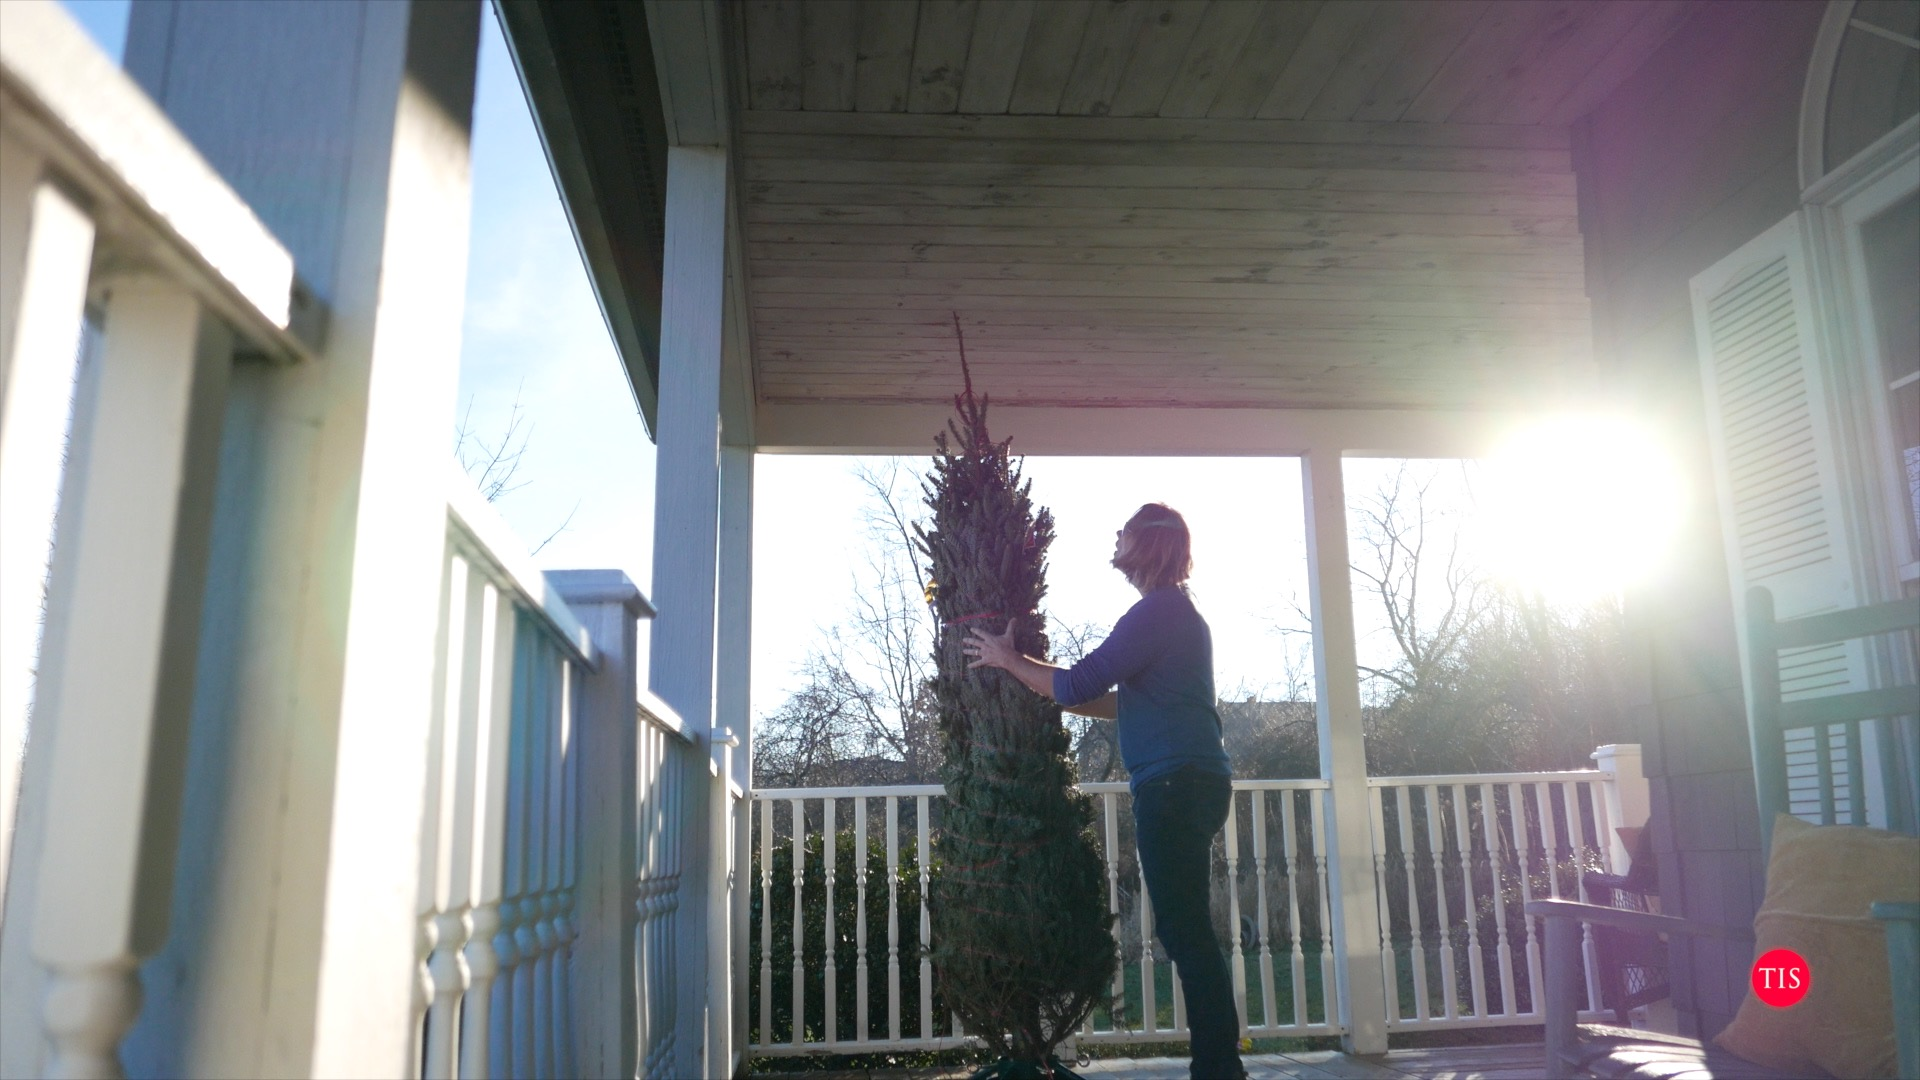 Charles Maring putting a fresh tree on the front porch of the Connecticut home.